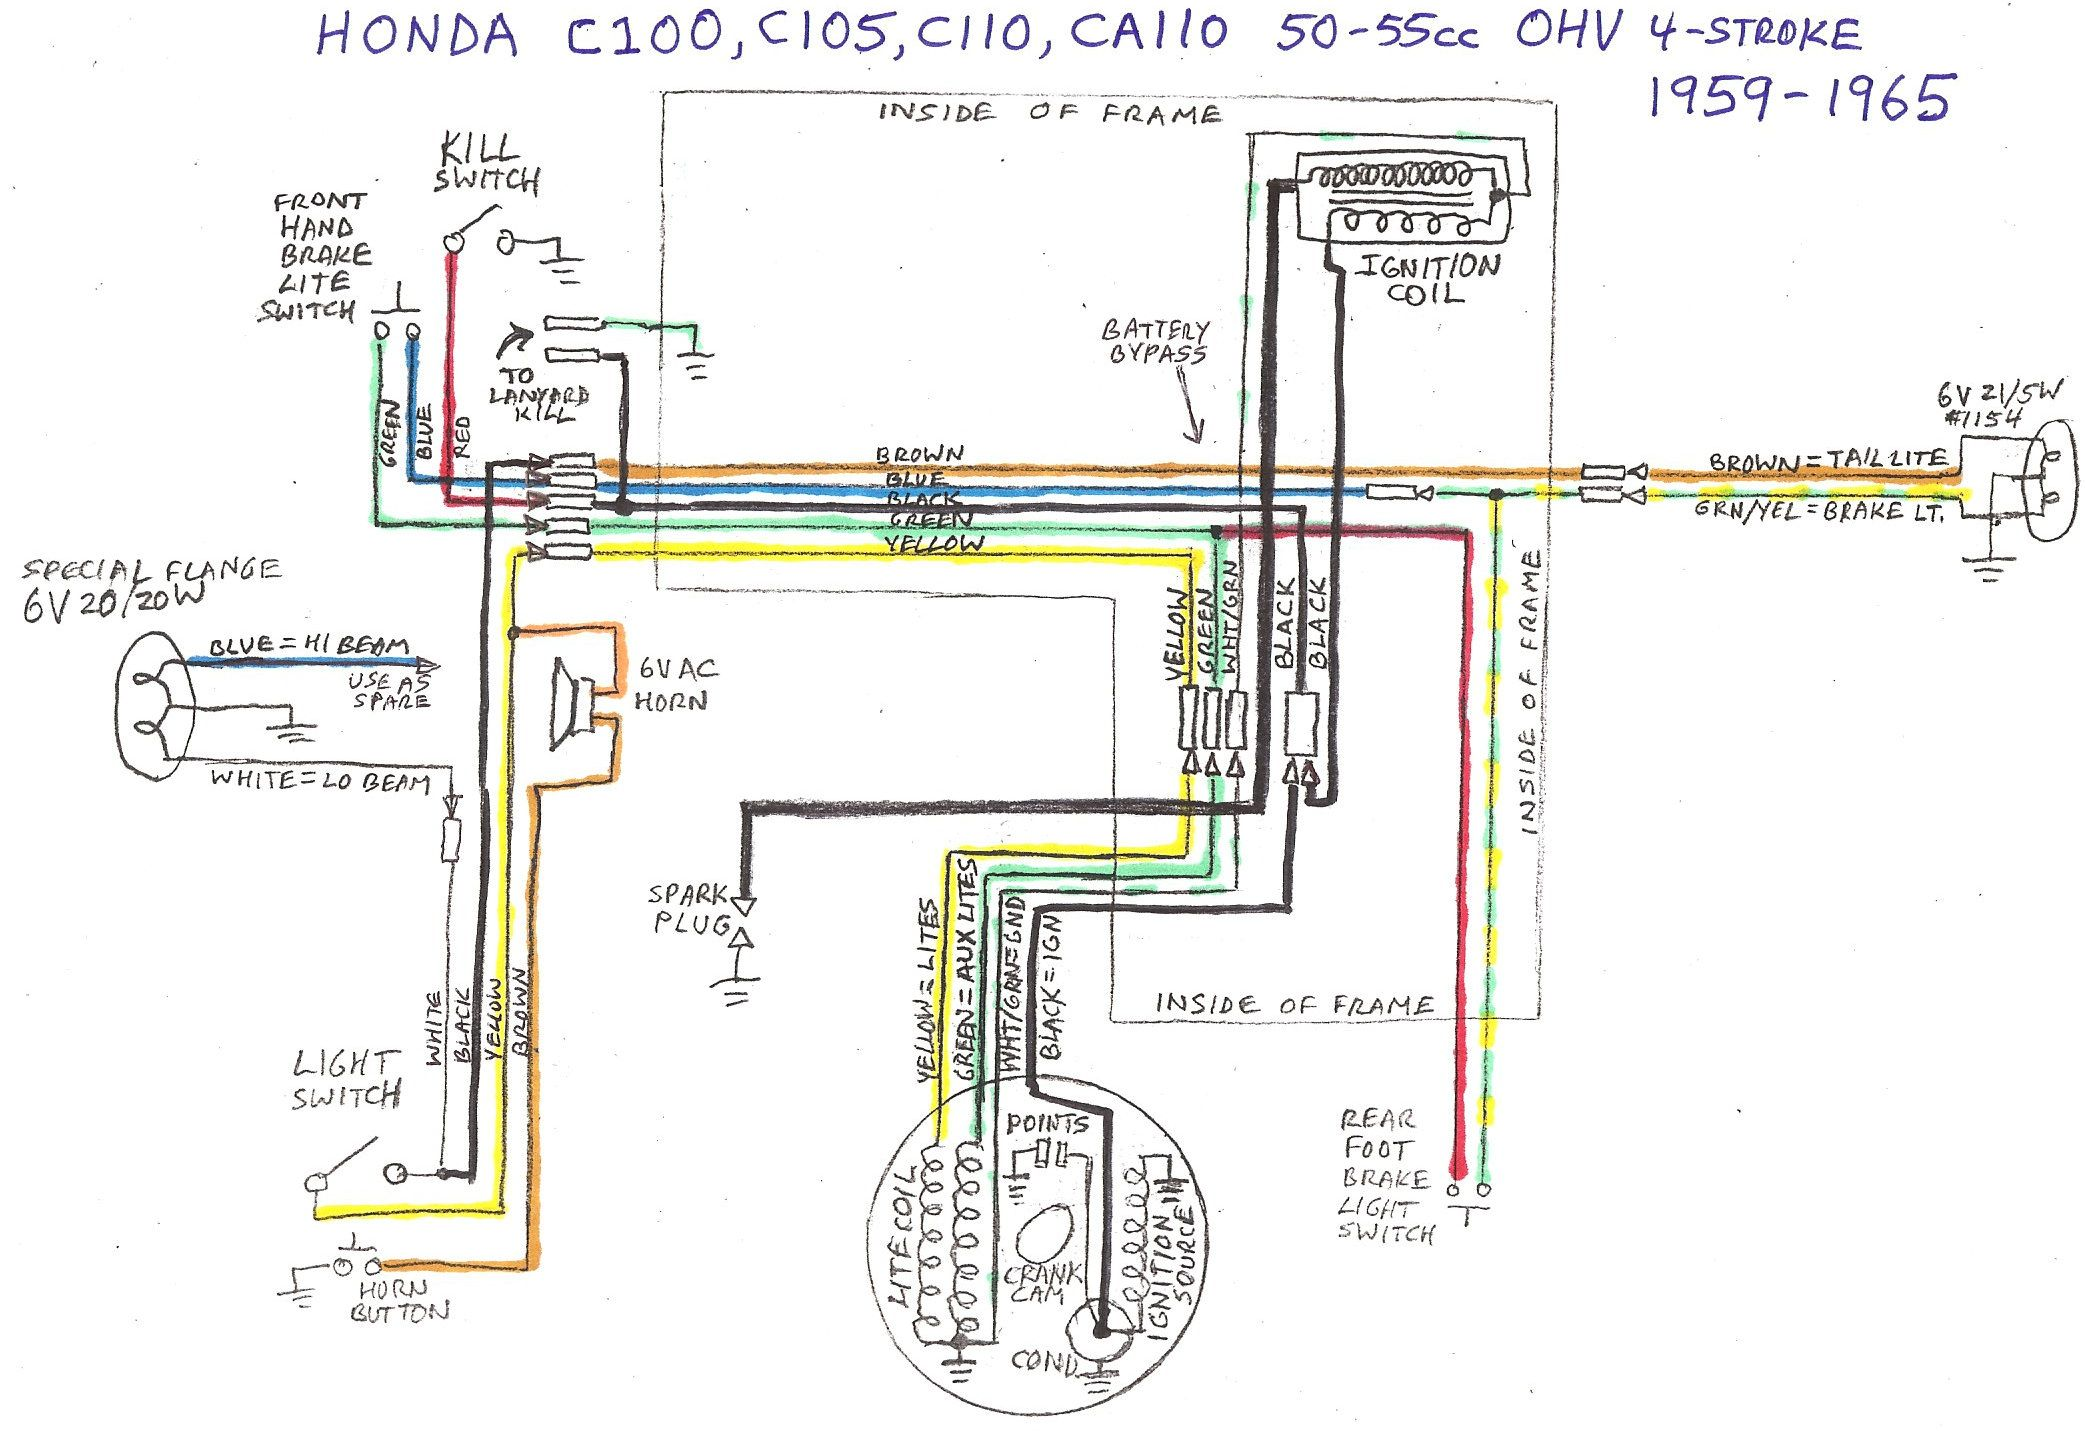 Pin by Michael P on Honda Cub | Diagram, Honda cub, Honda